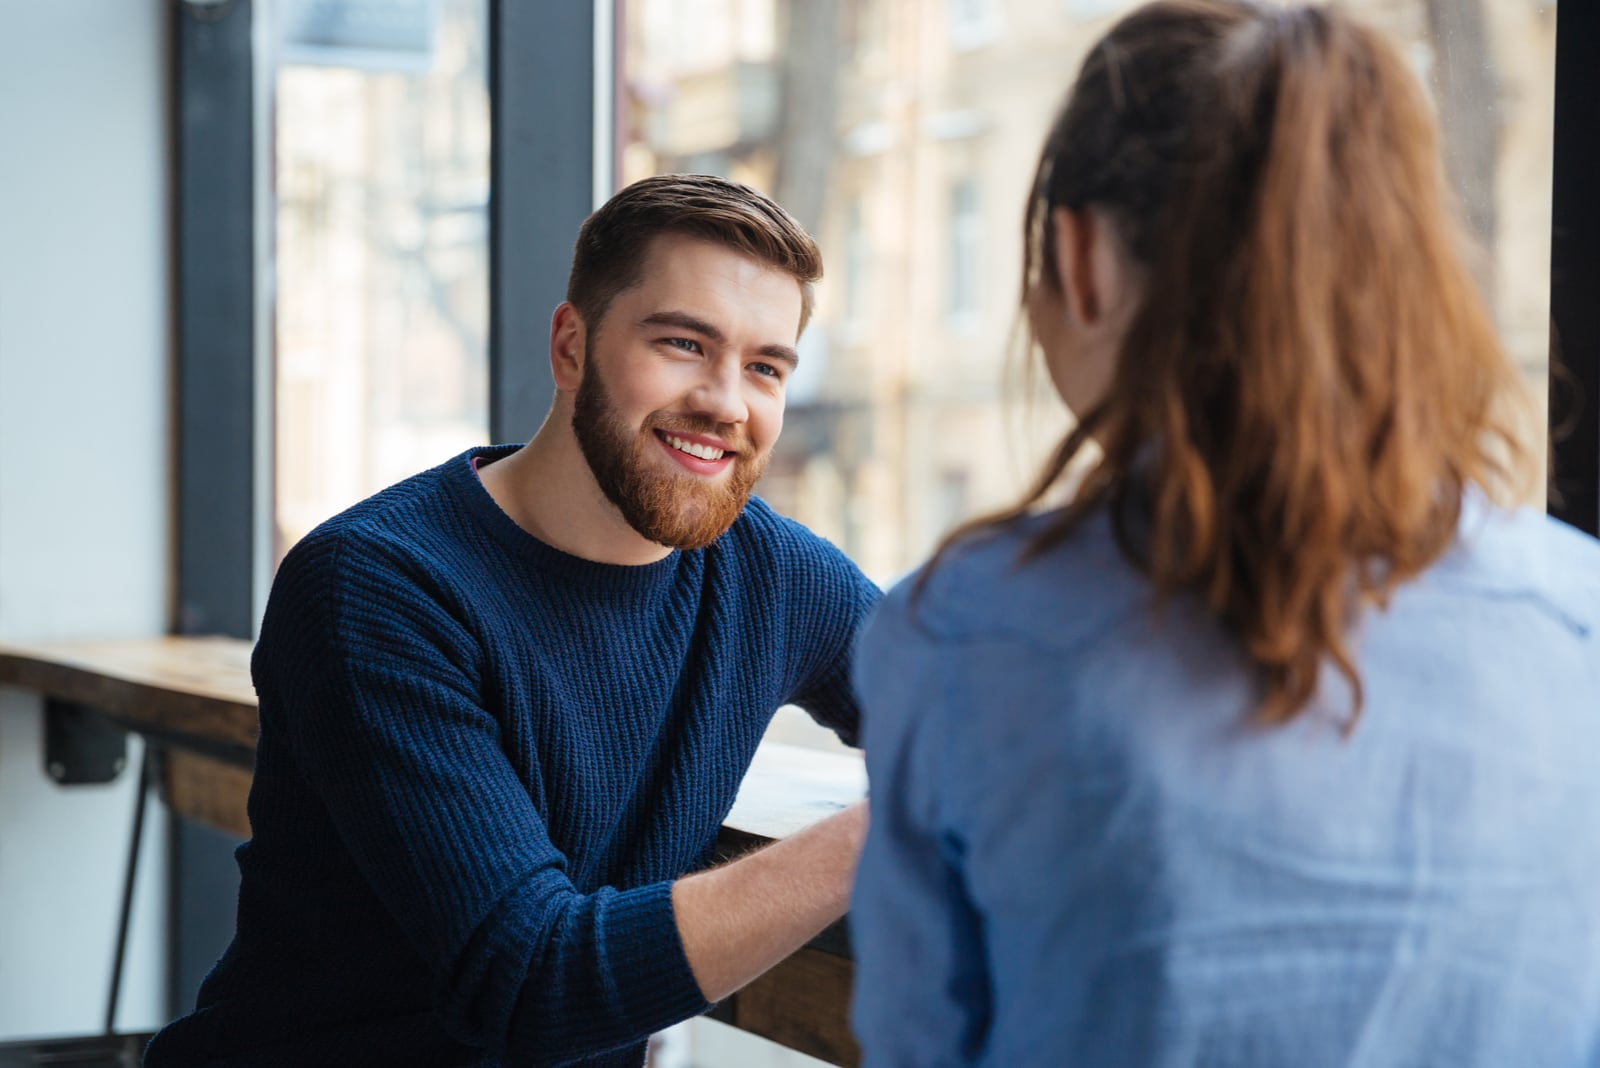 smiling man with beard looking at woman